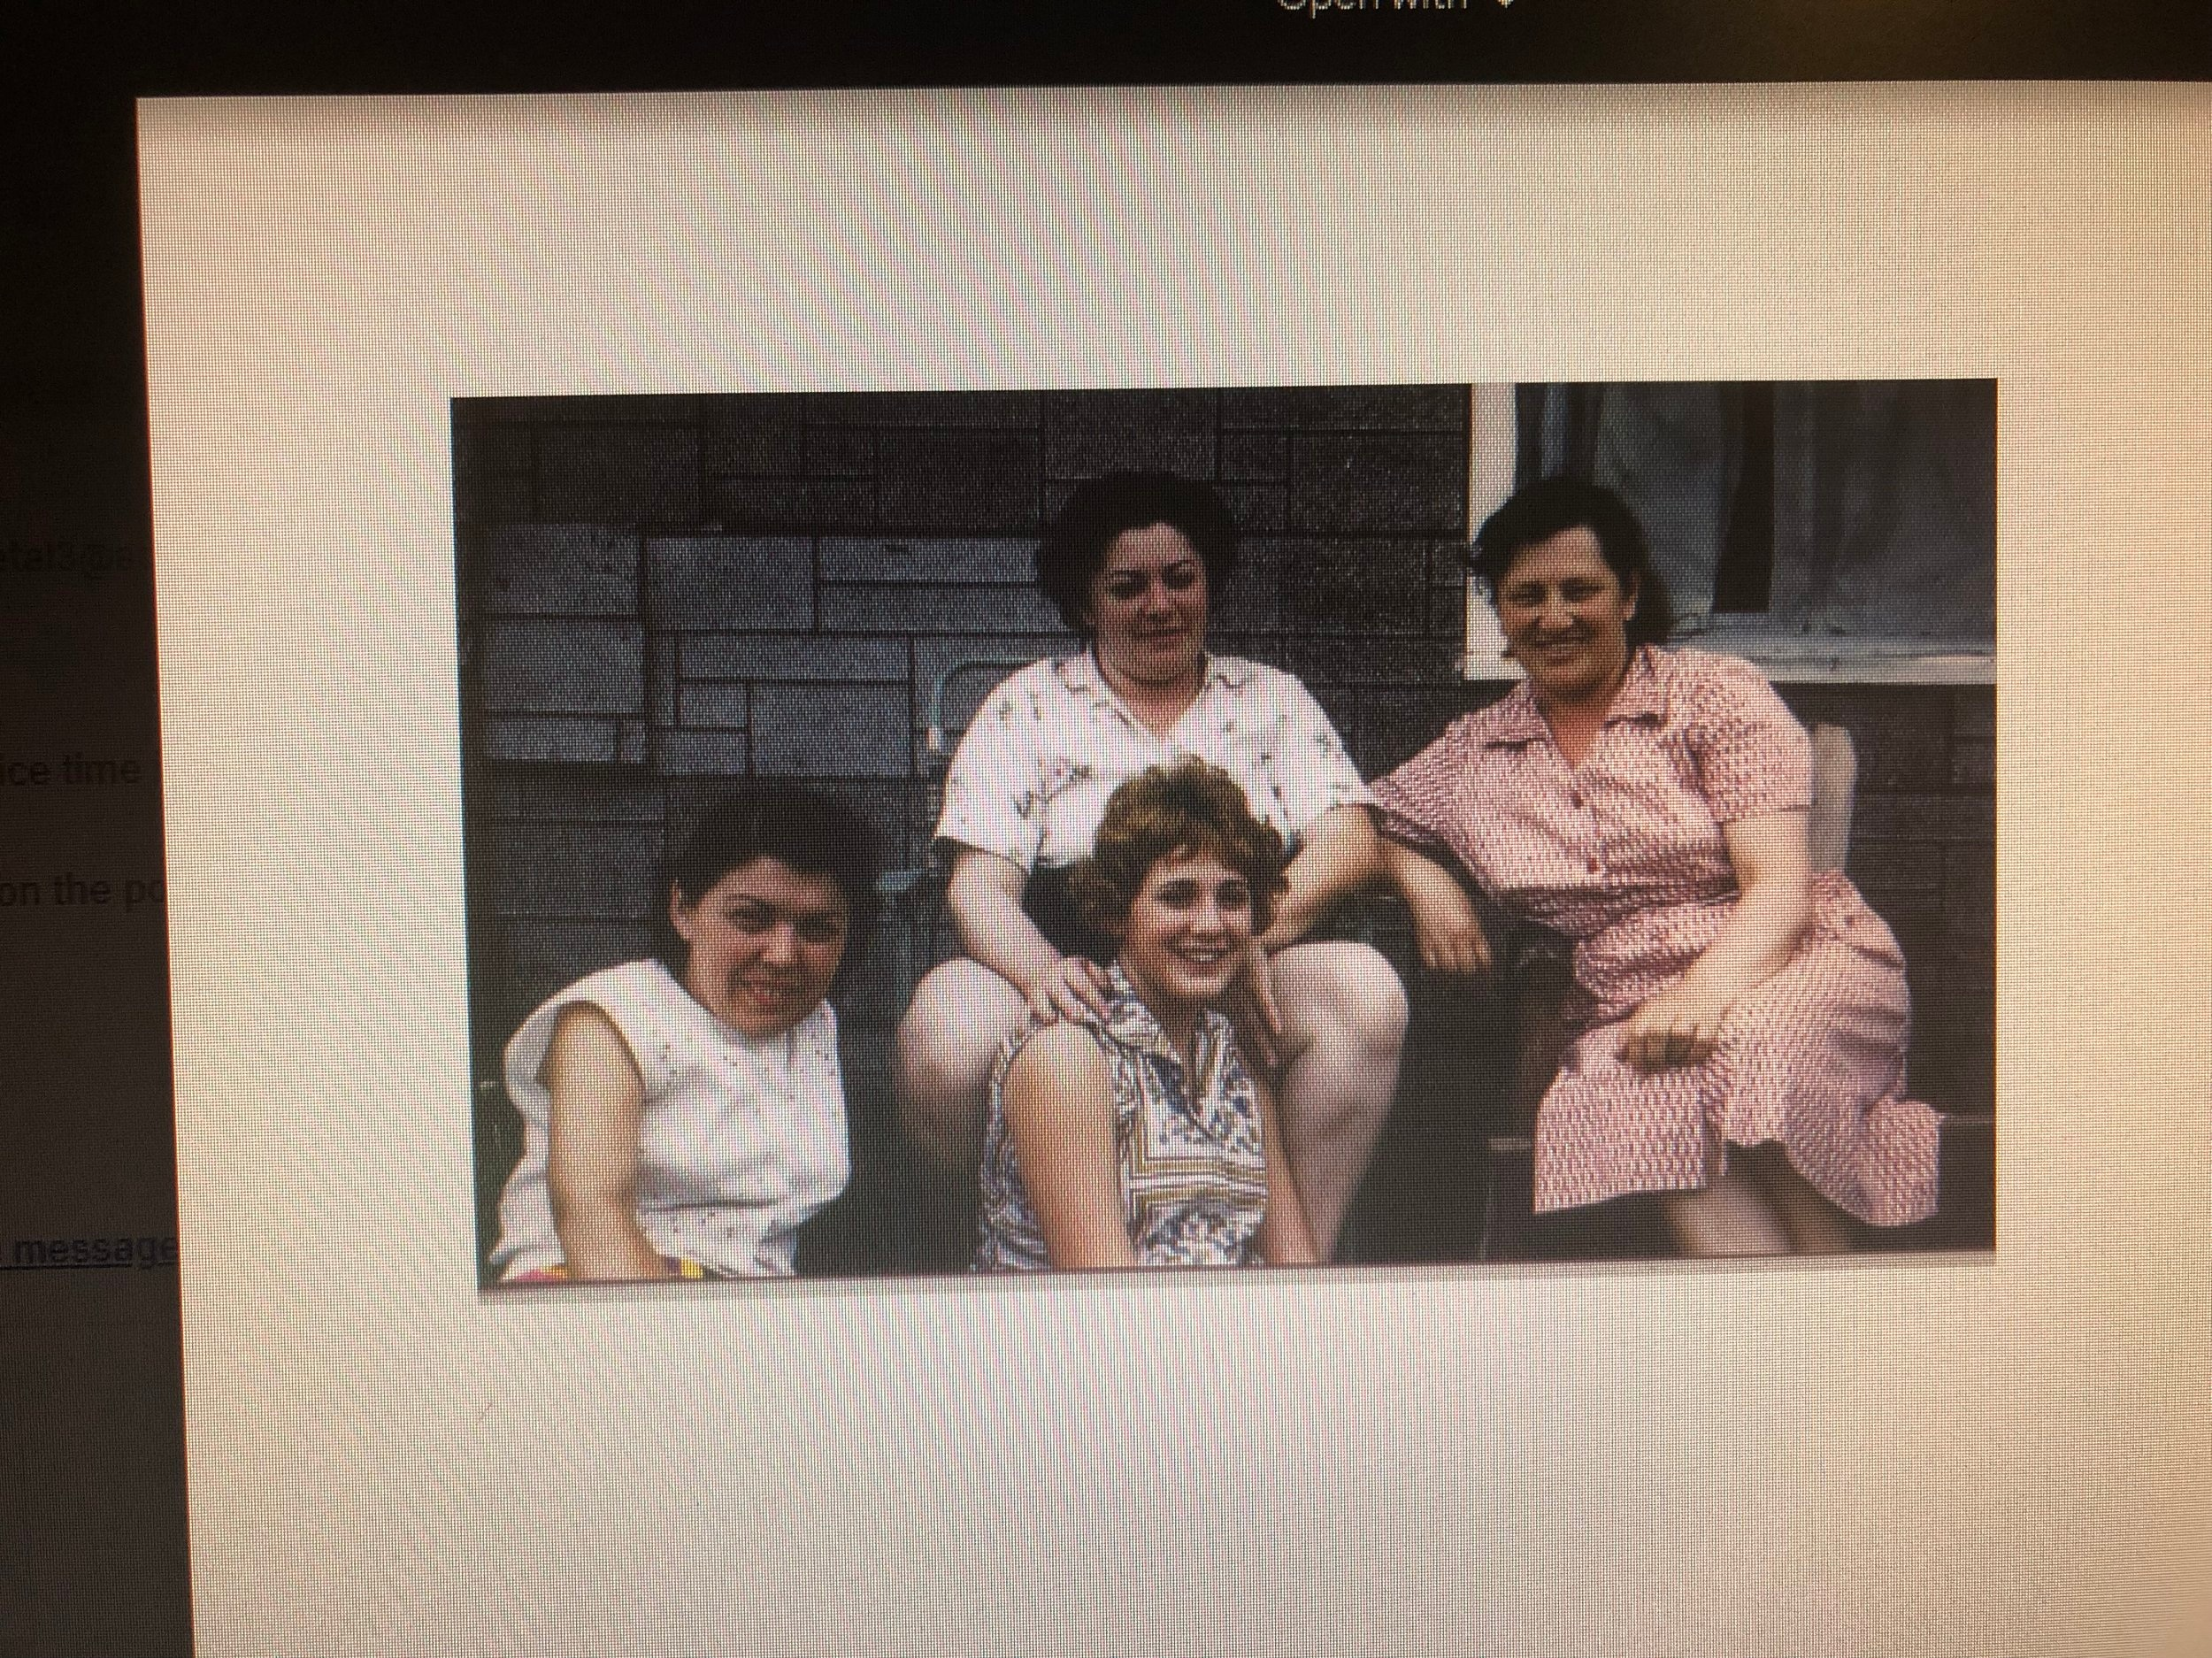 Sarah Weber-left, Gladys Markin and her daughter Linda-center, my mother Ida Mark-right  Mountain View Bungalows Livingston Manor, New York late 1950s